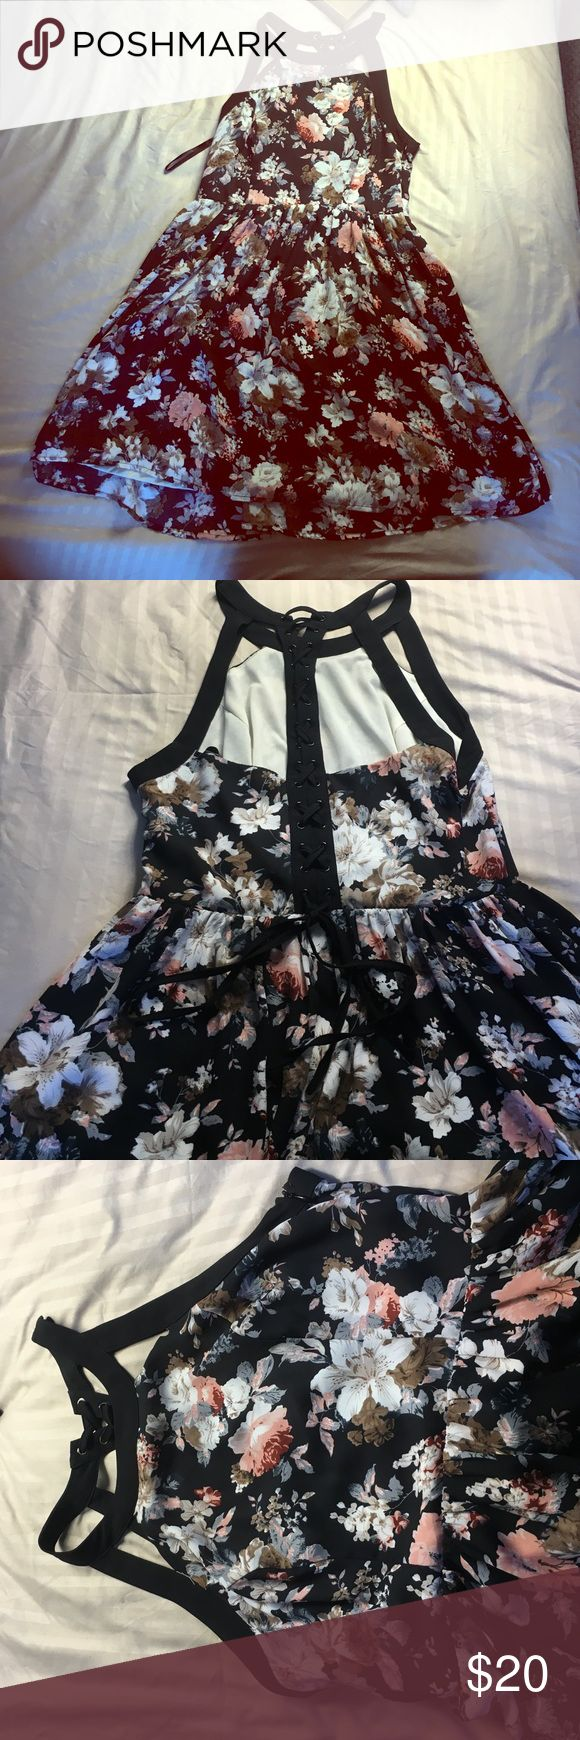 Floral Winter Dress with Black Lace up Straps Warn once. Feminine dress with a little attitude. Chiffon material and super cute for fall. Bought from Bloomingdales. True to size and comfortable. Ark & Co Dresses Midi